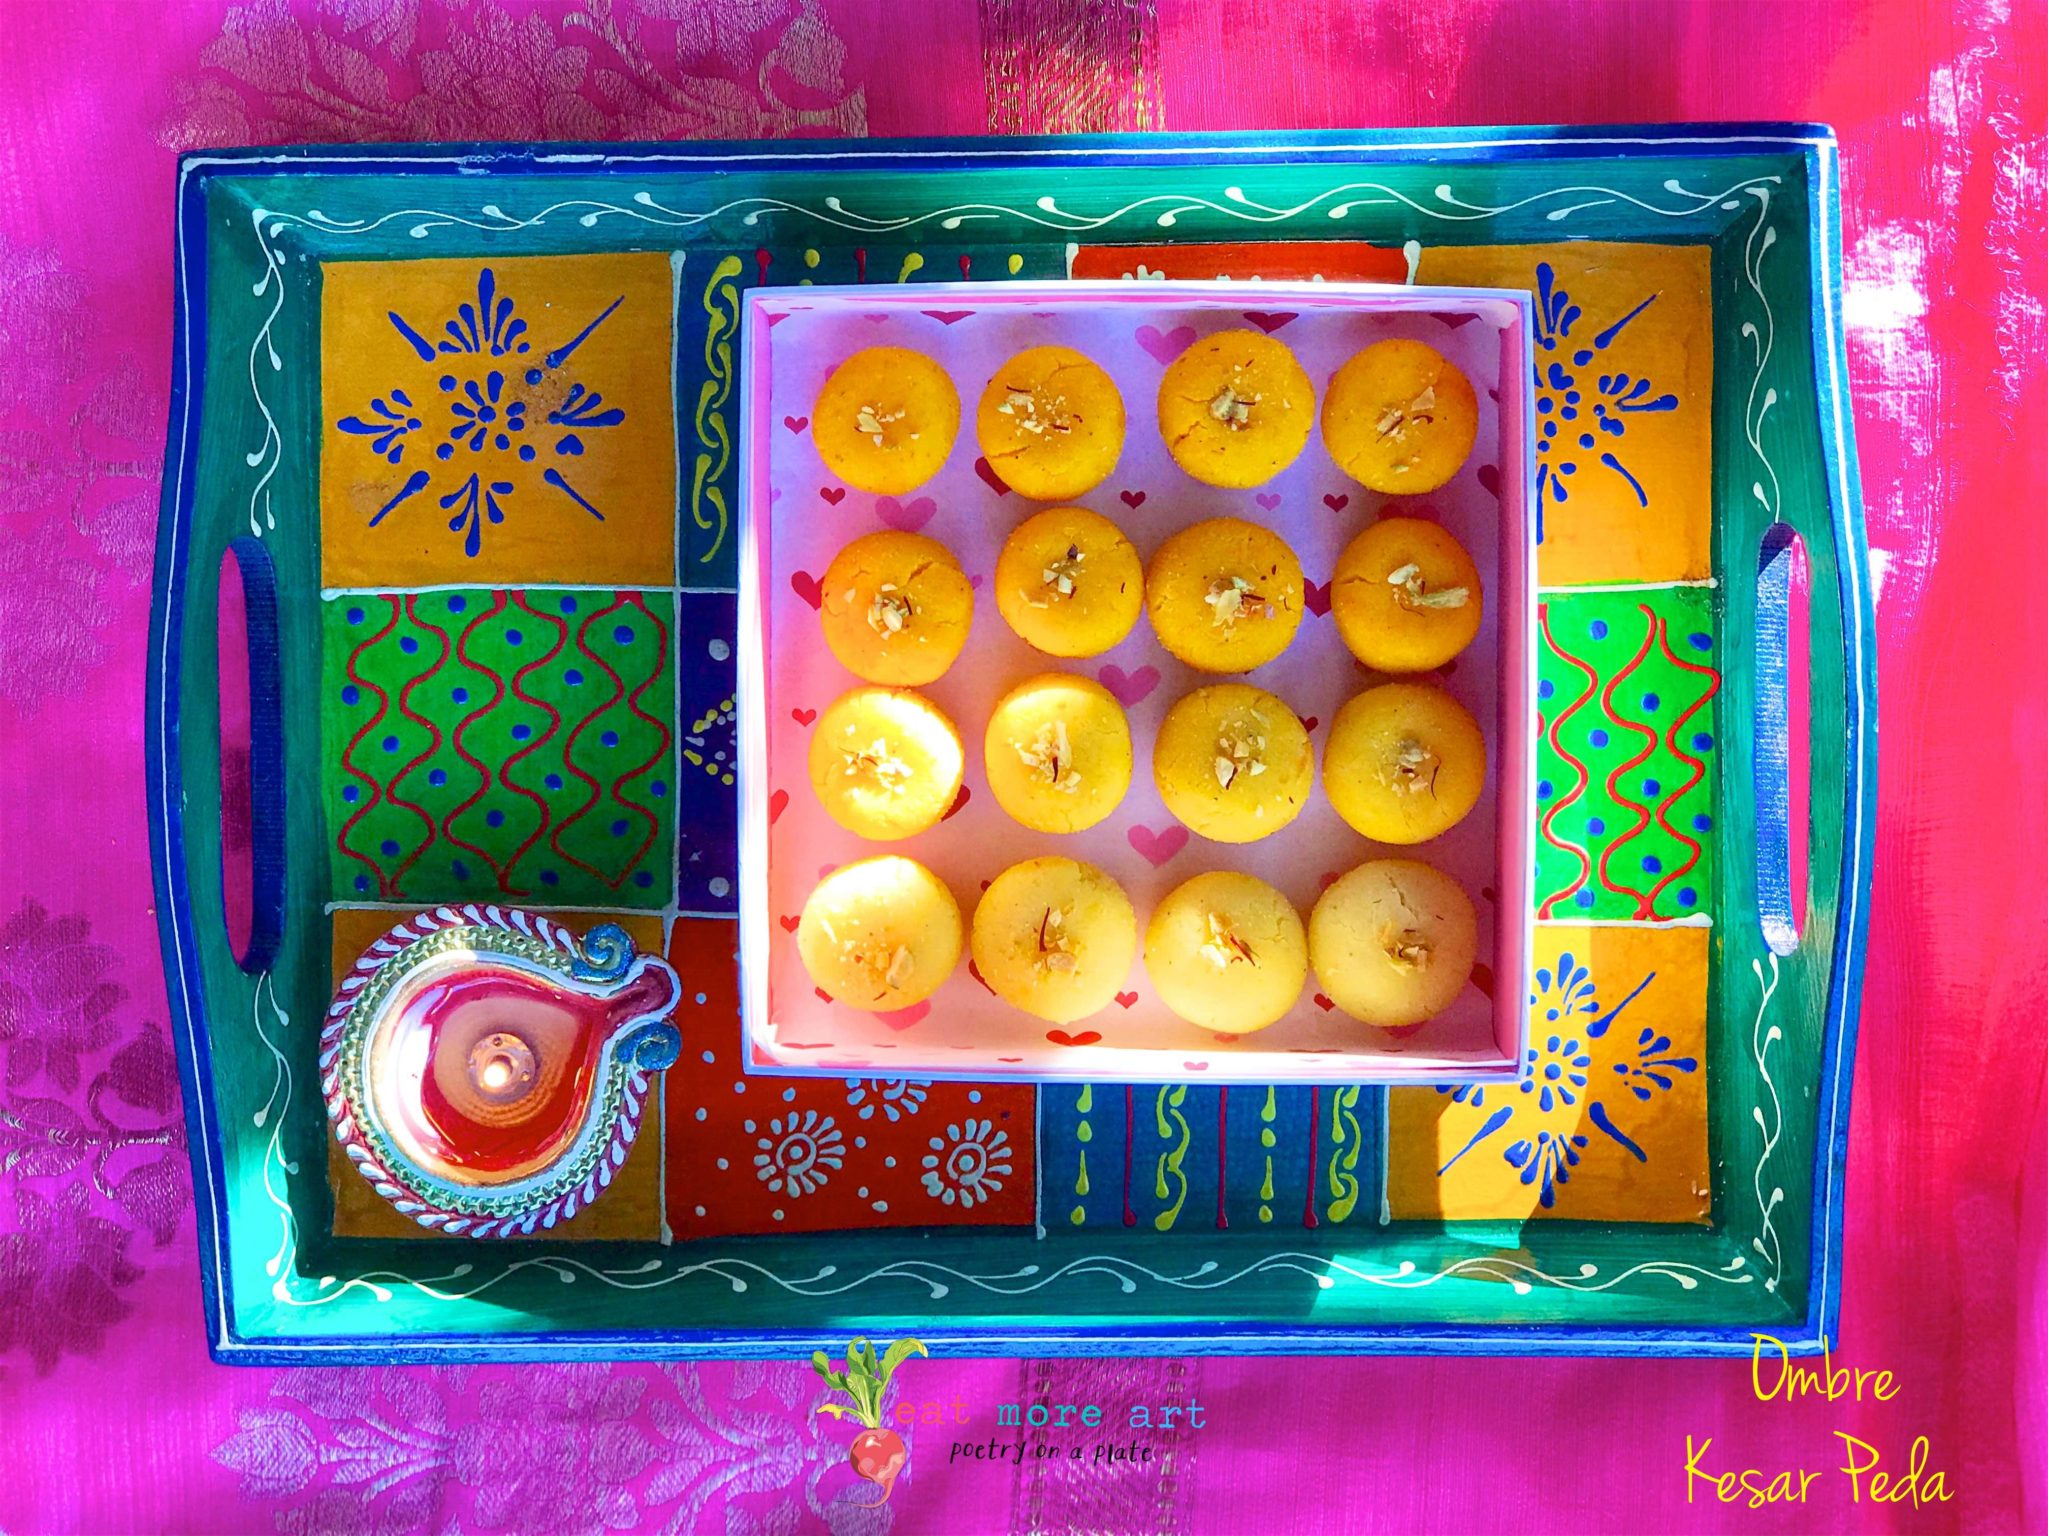 Ombre saffron peda in shades of yellow and orange arranged in a box decorative colorful tray